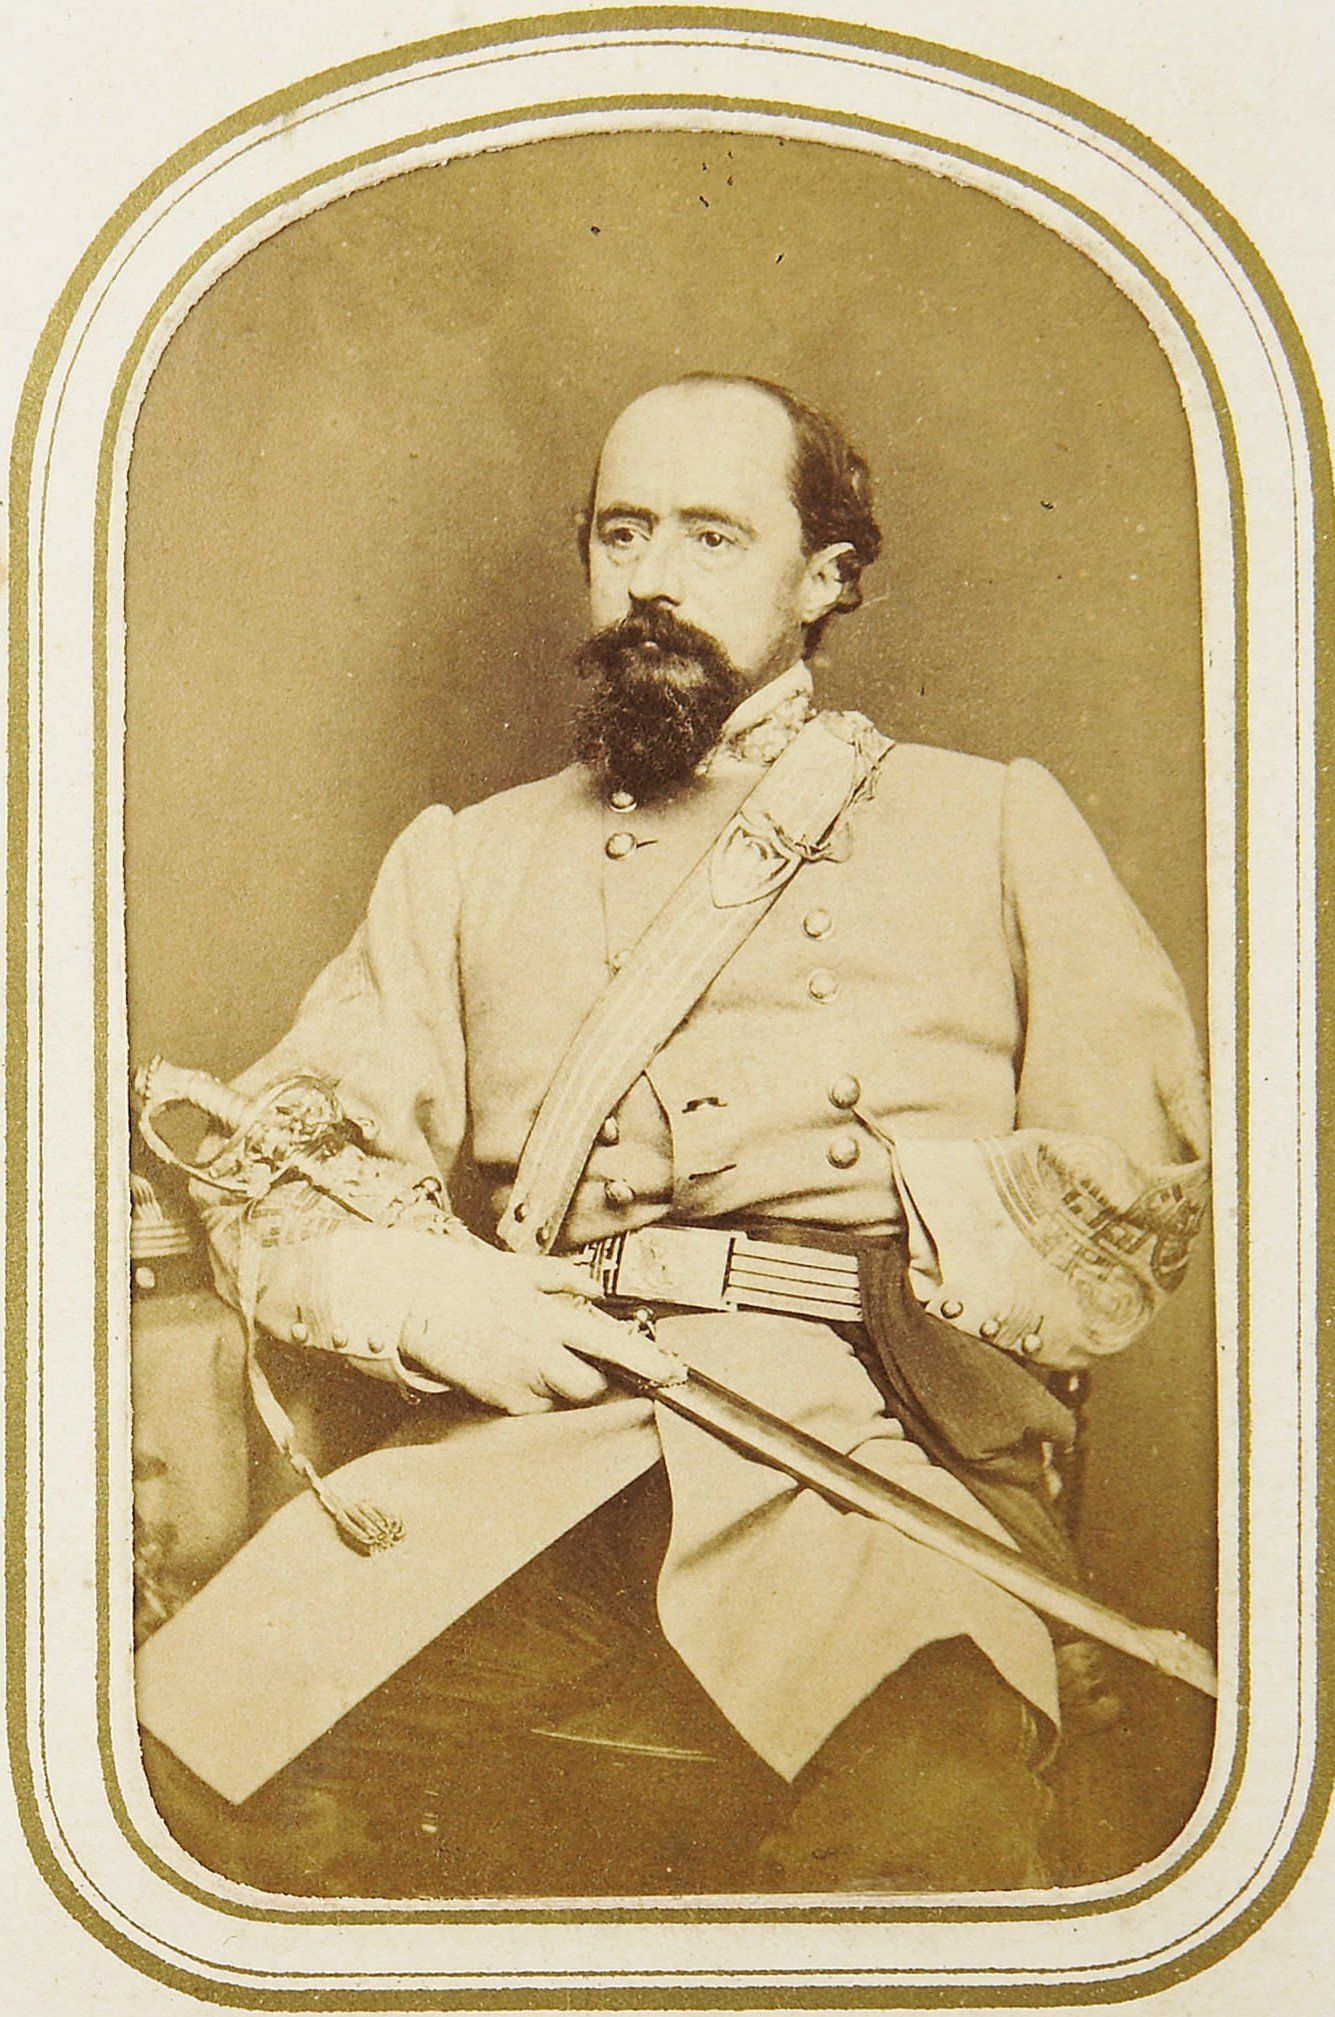 General William W. Loring, C.S.A. Commander of Confederate forces in the Kanawha Valley in 1862. After the war, he went on to serve in Egypt with about 50 Civil War veterans, working to modernize the Egyptian Army. National Archives.